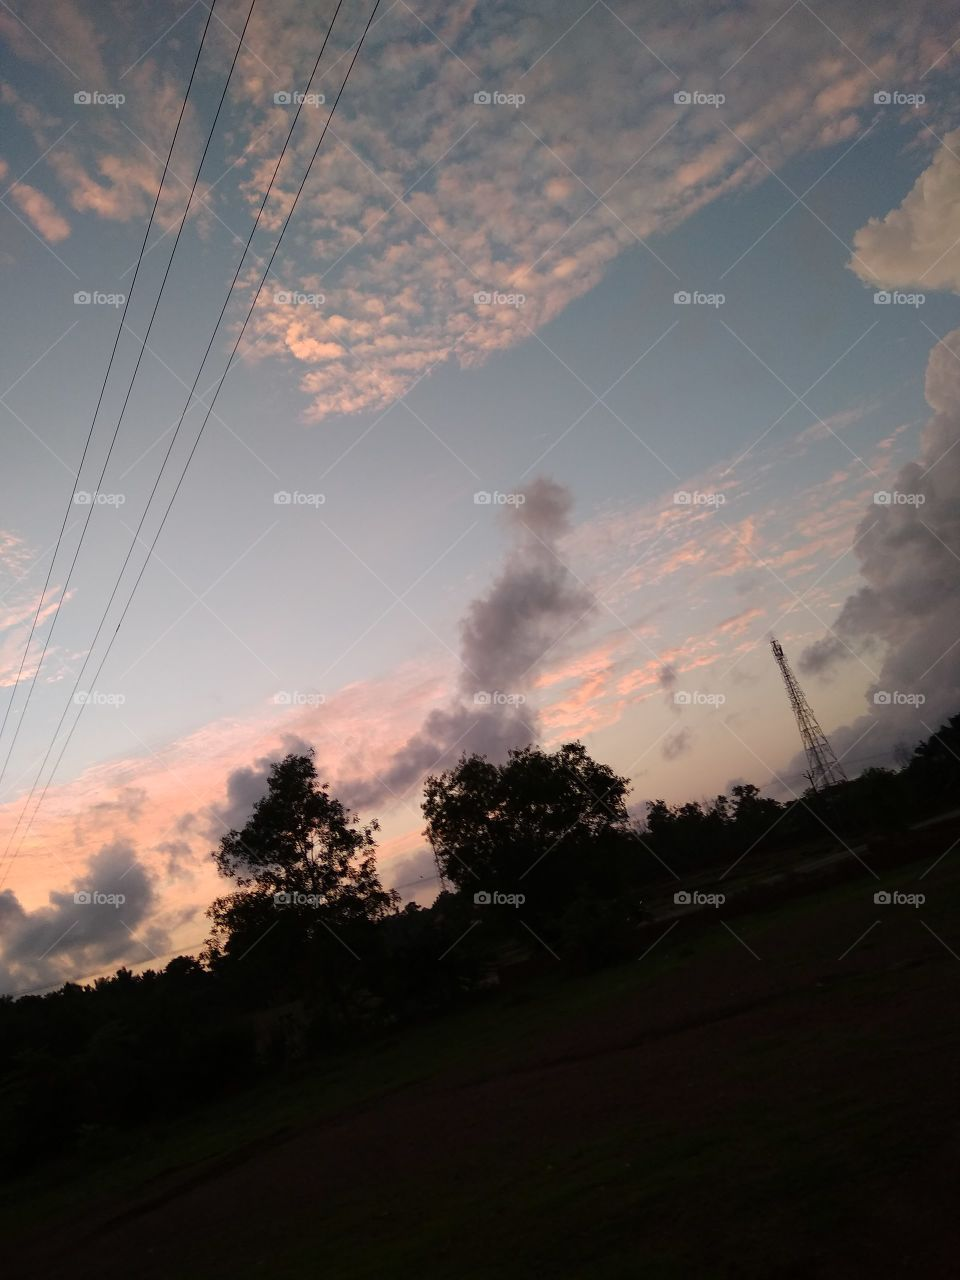 my photo comment